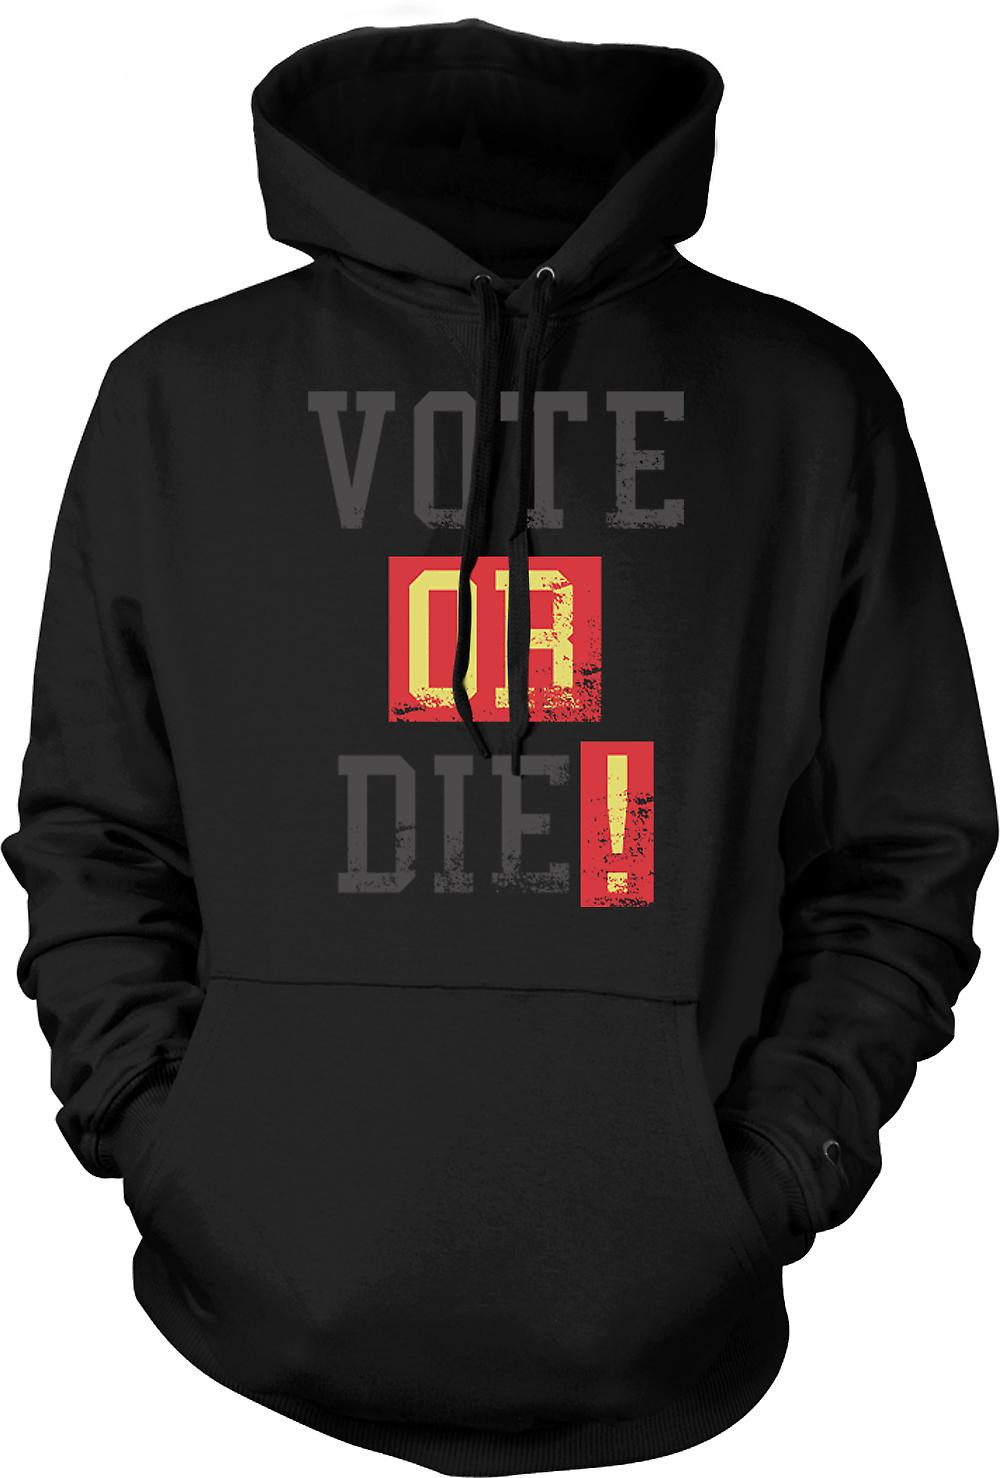 Mens Hoodie - Vote Or Die - Funny South Park Inspired